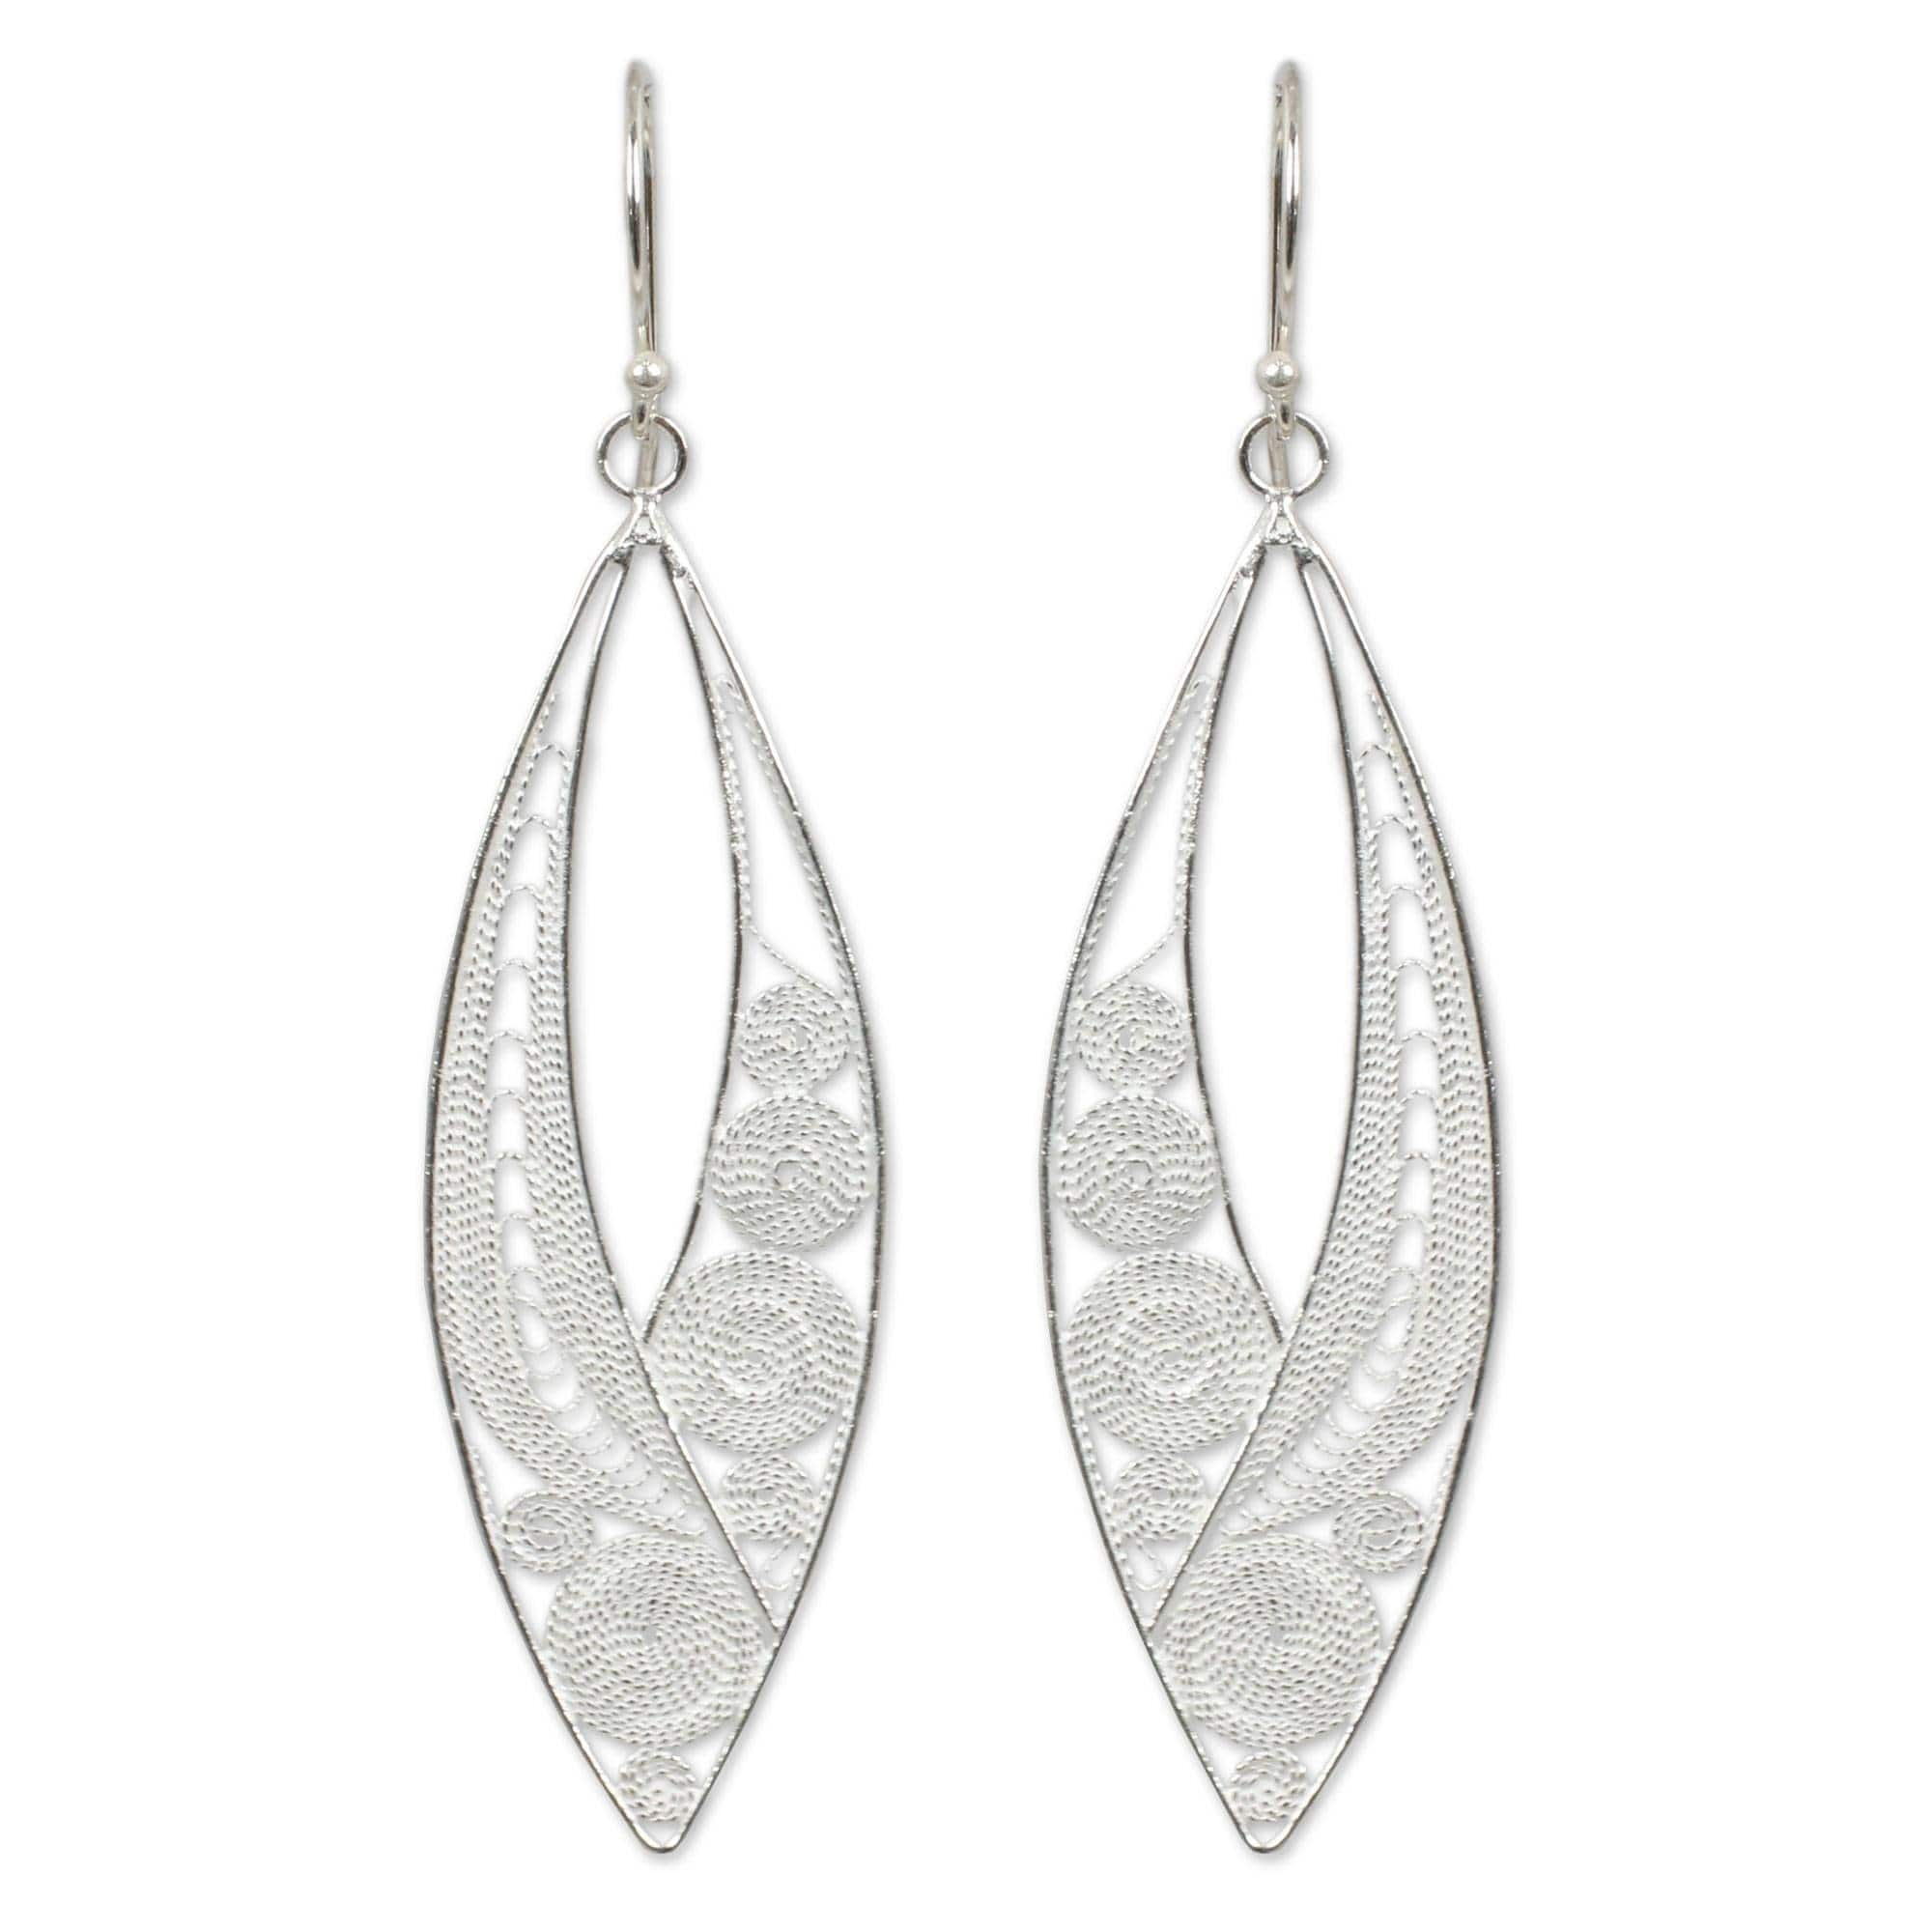 Buy Sterling Silver Earrings Online At Overstock Our